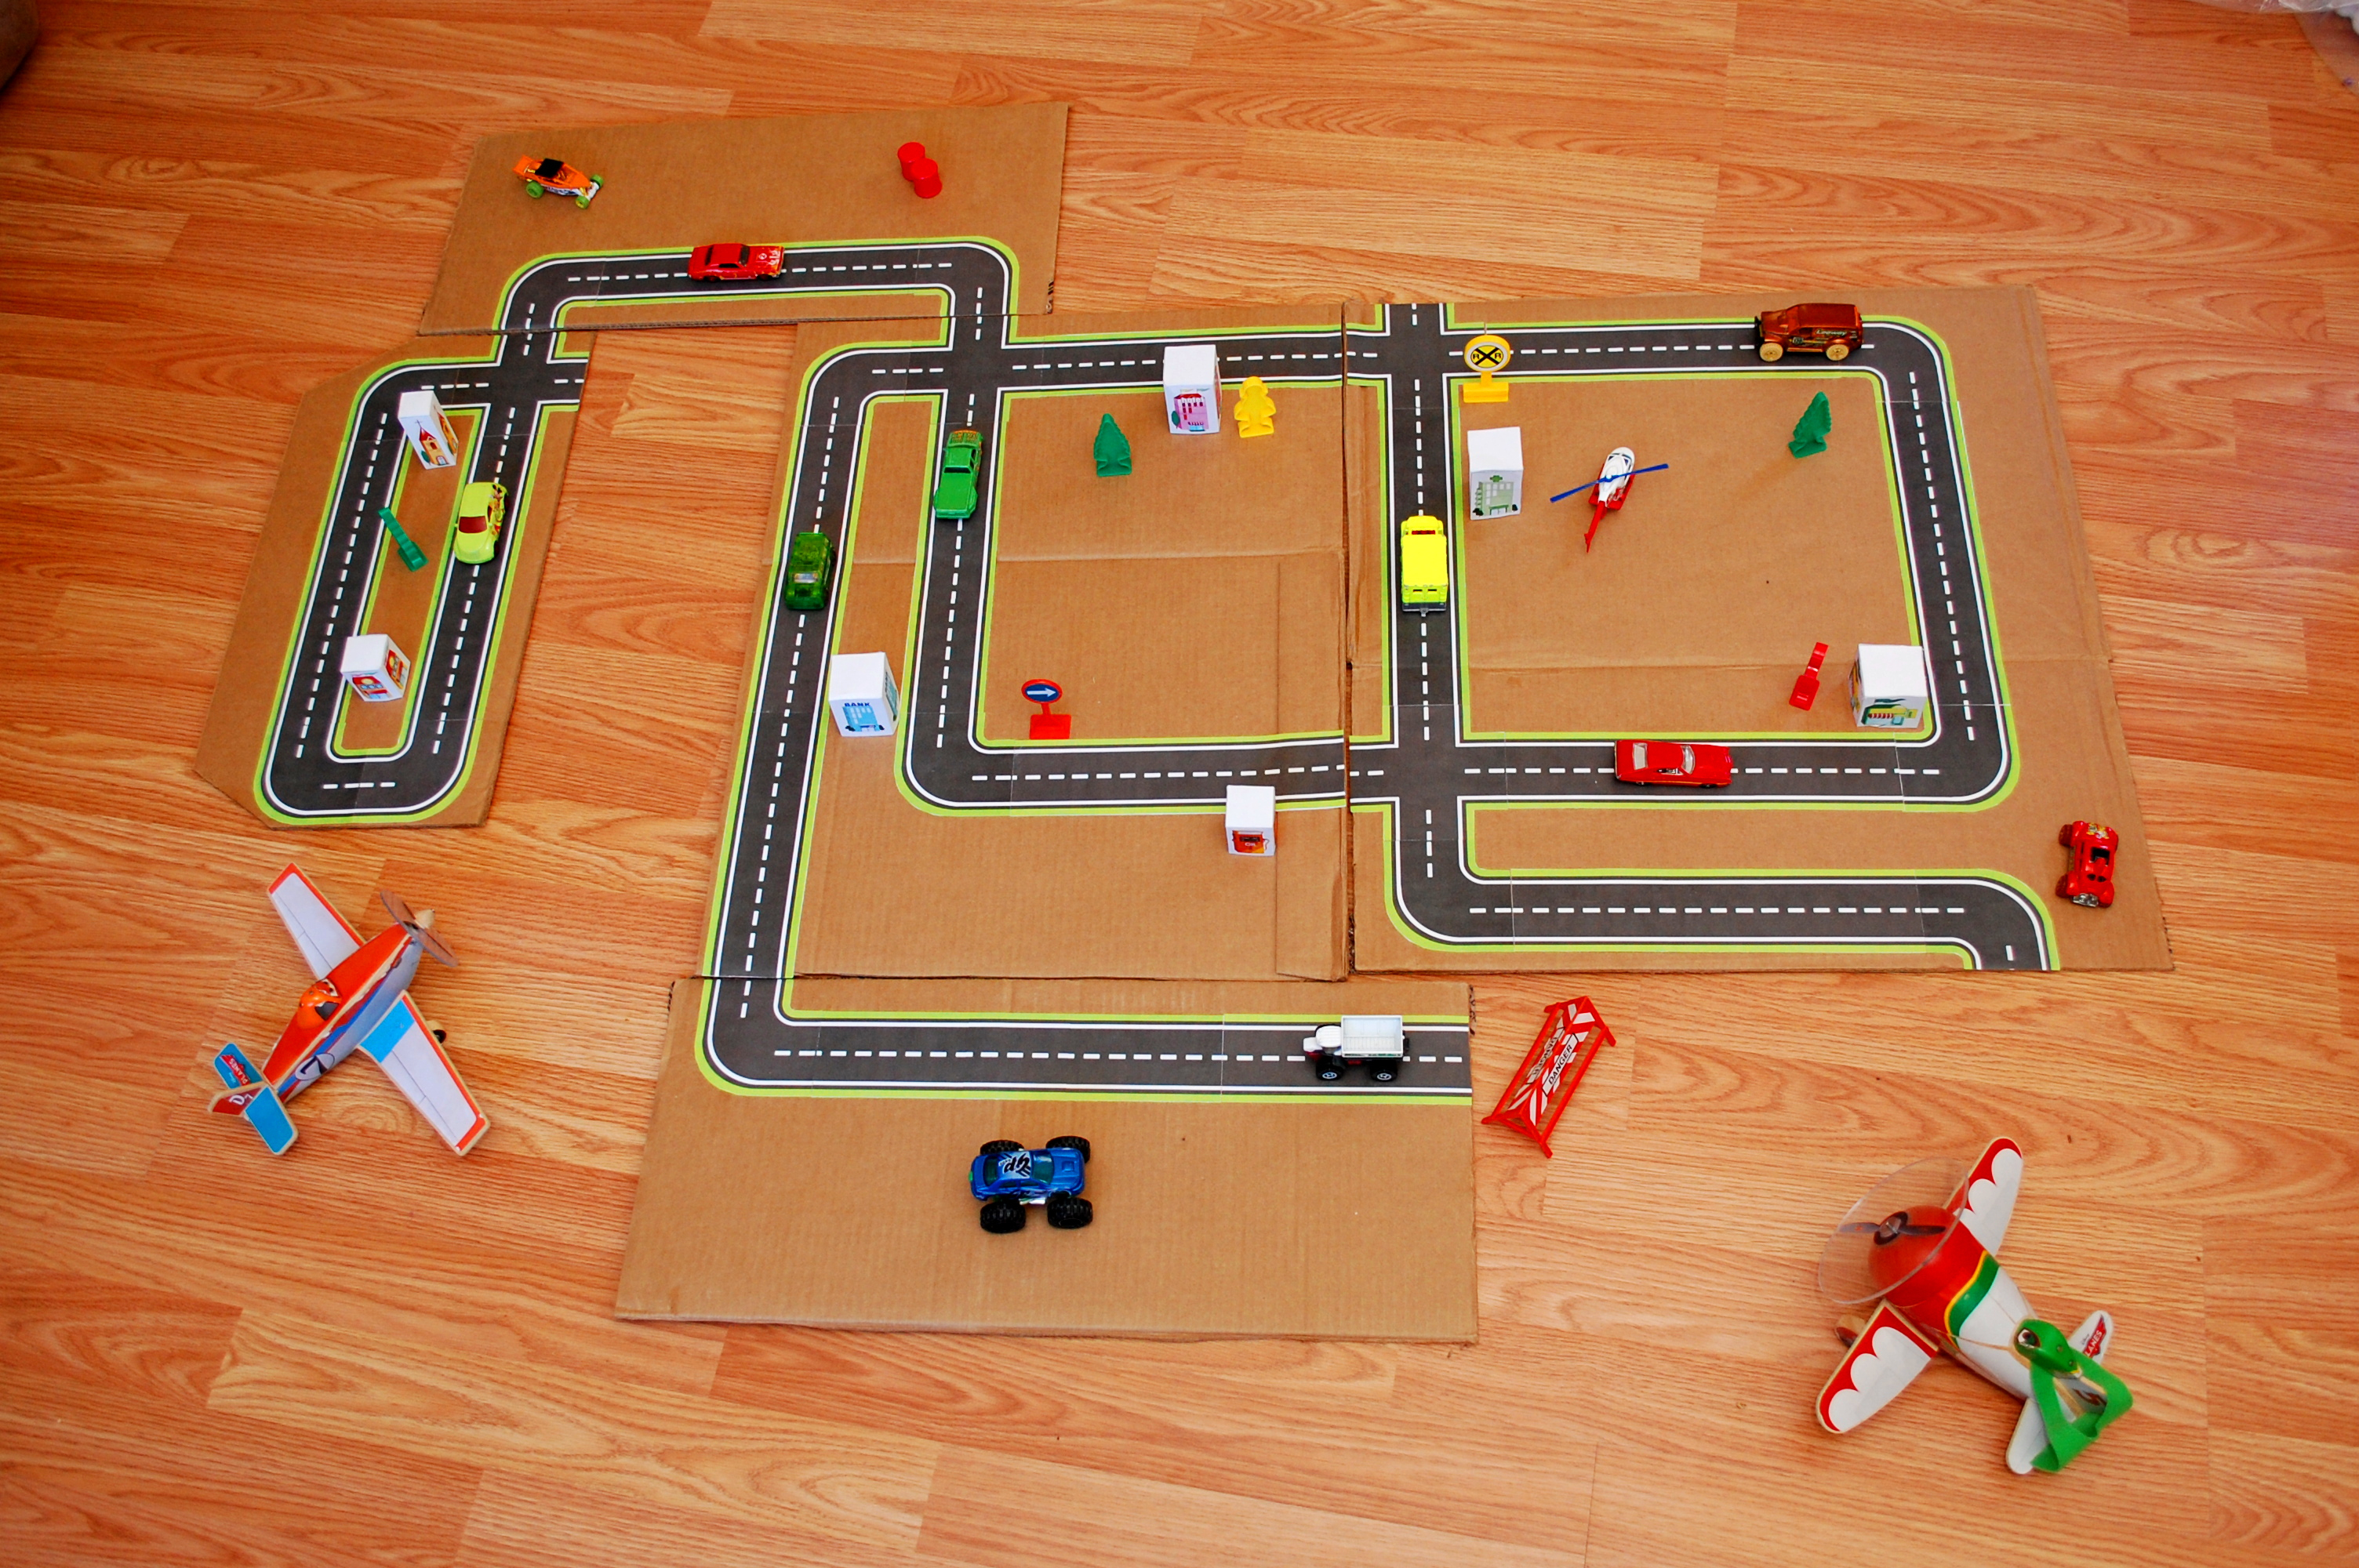 Printable Road Maps For Toy Cars | Fun Family Crafts - Free Printable Road Maps For Kids